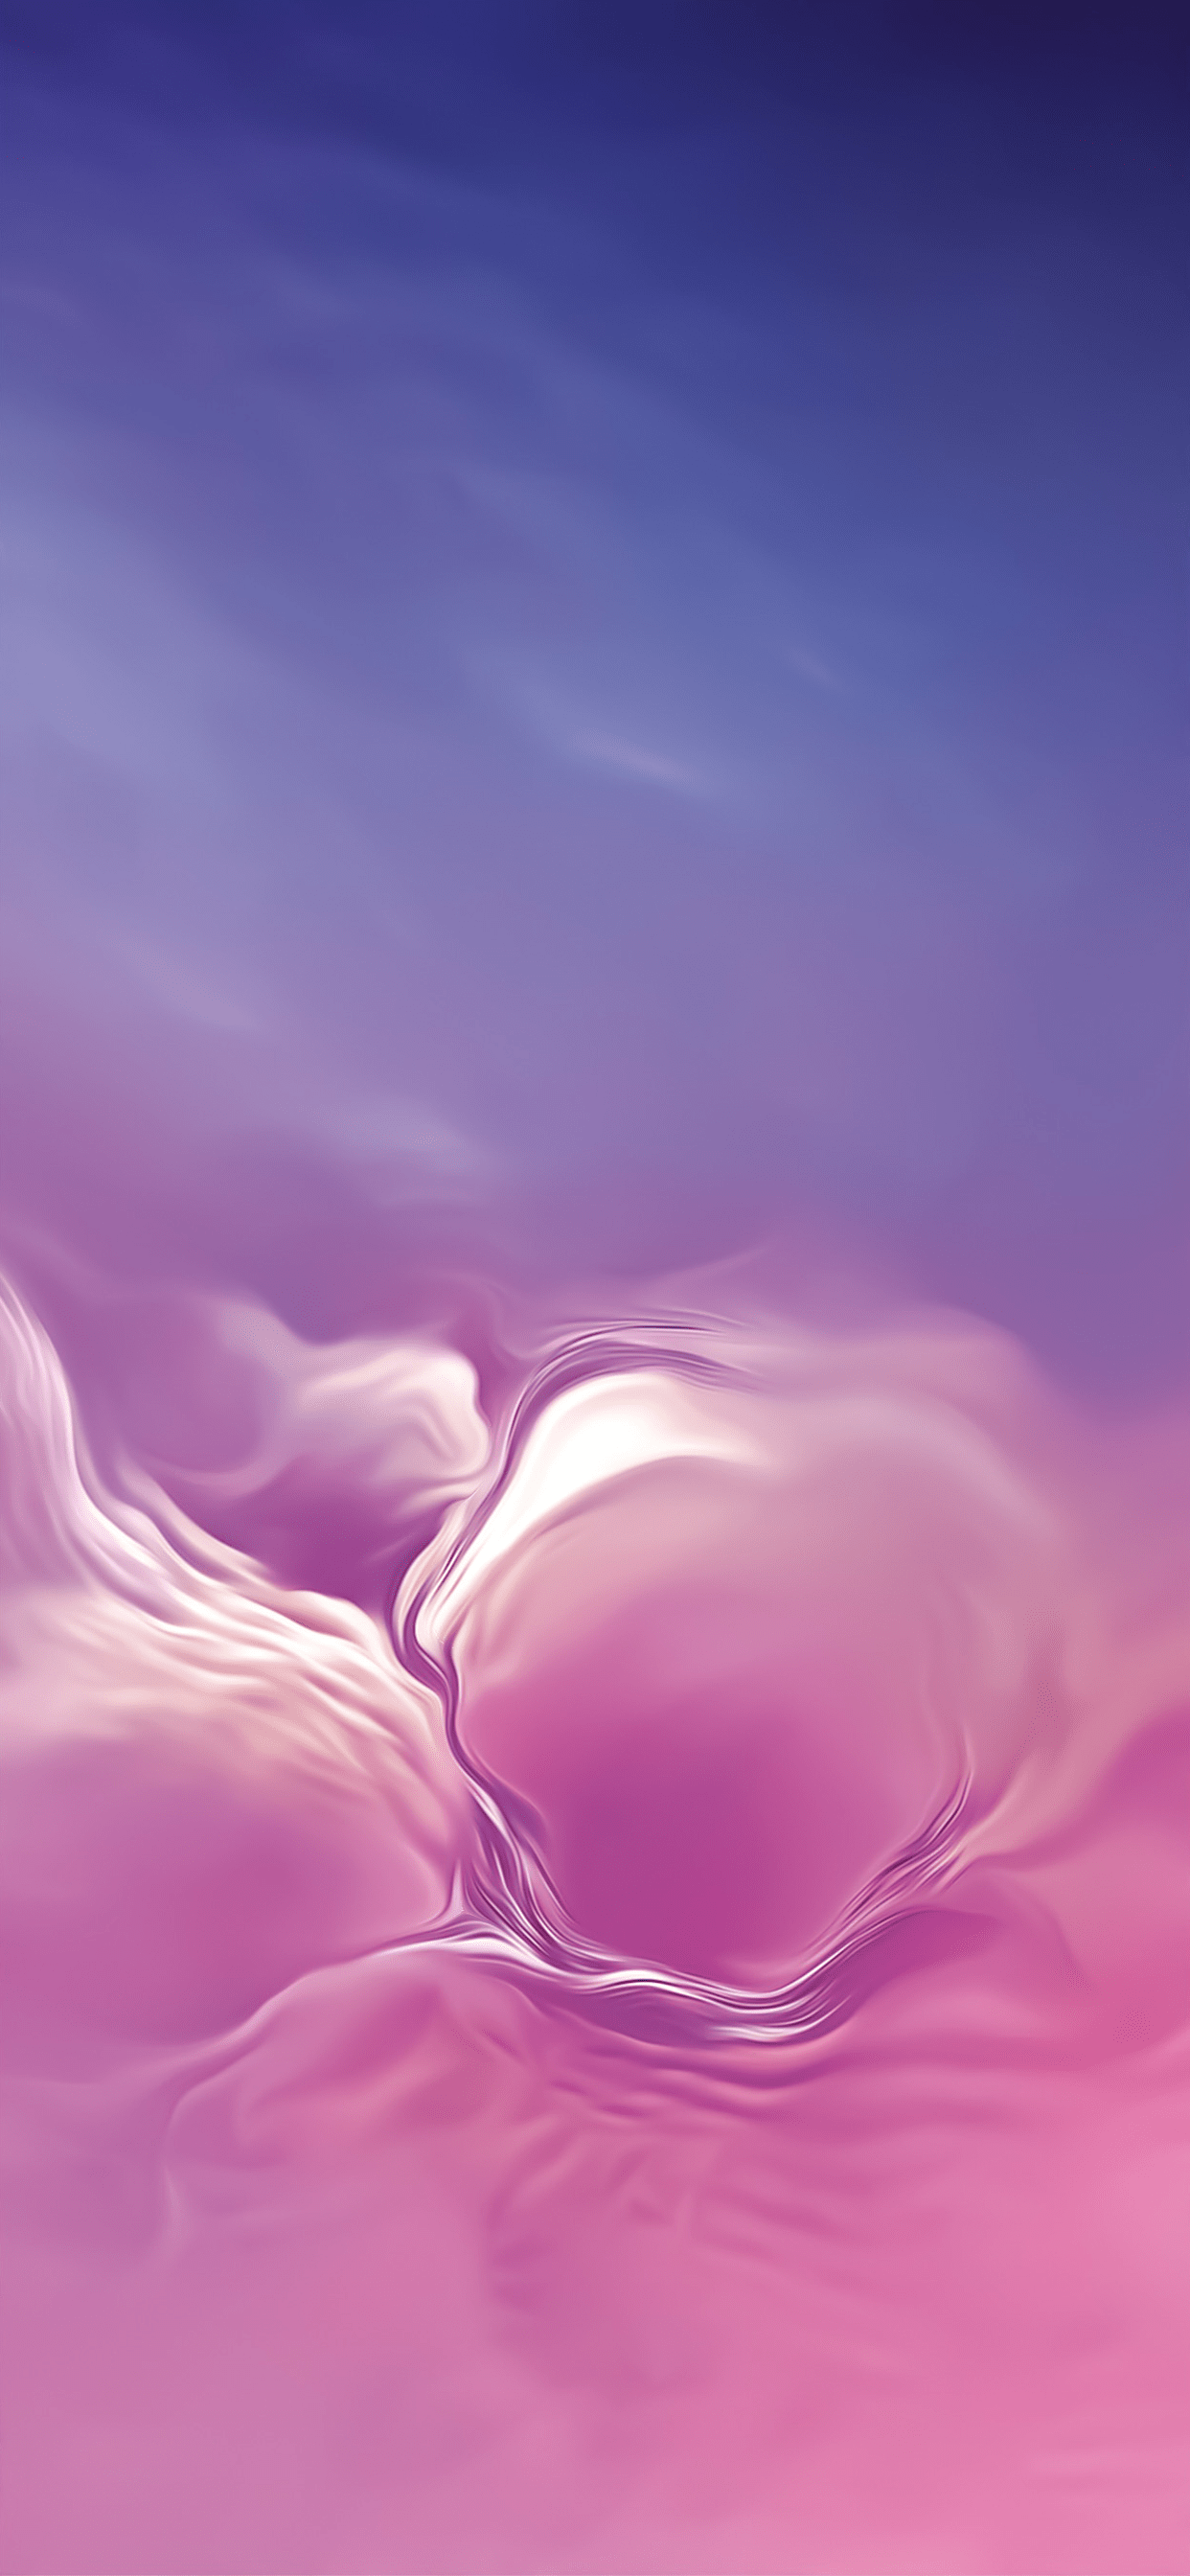 Download Official Samsung Galaxy S10 Wallpapers 3